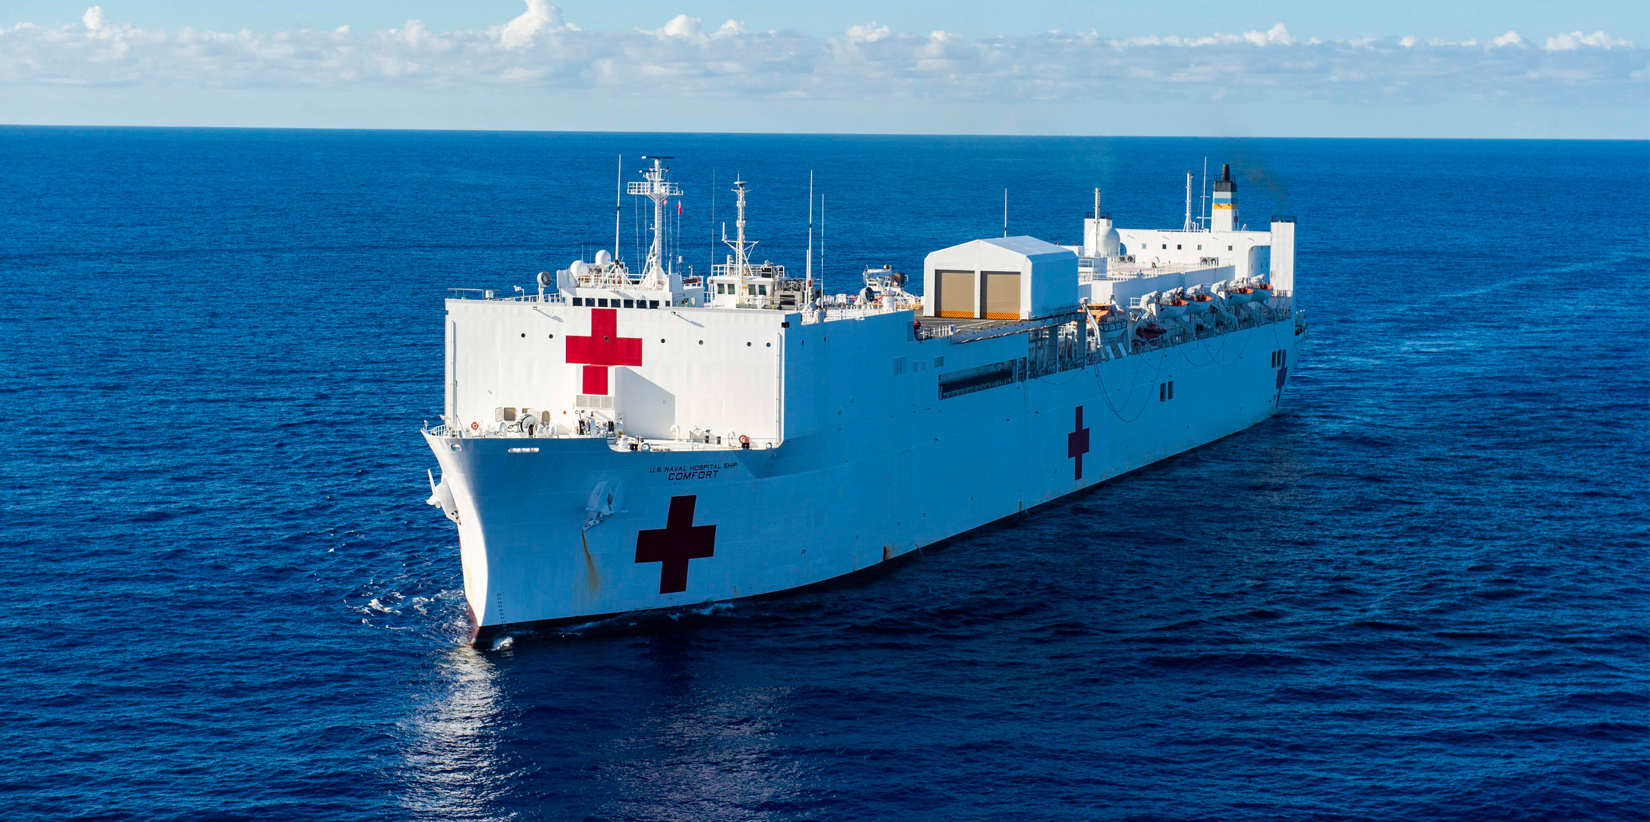 USNS Comfort at Sea